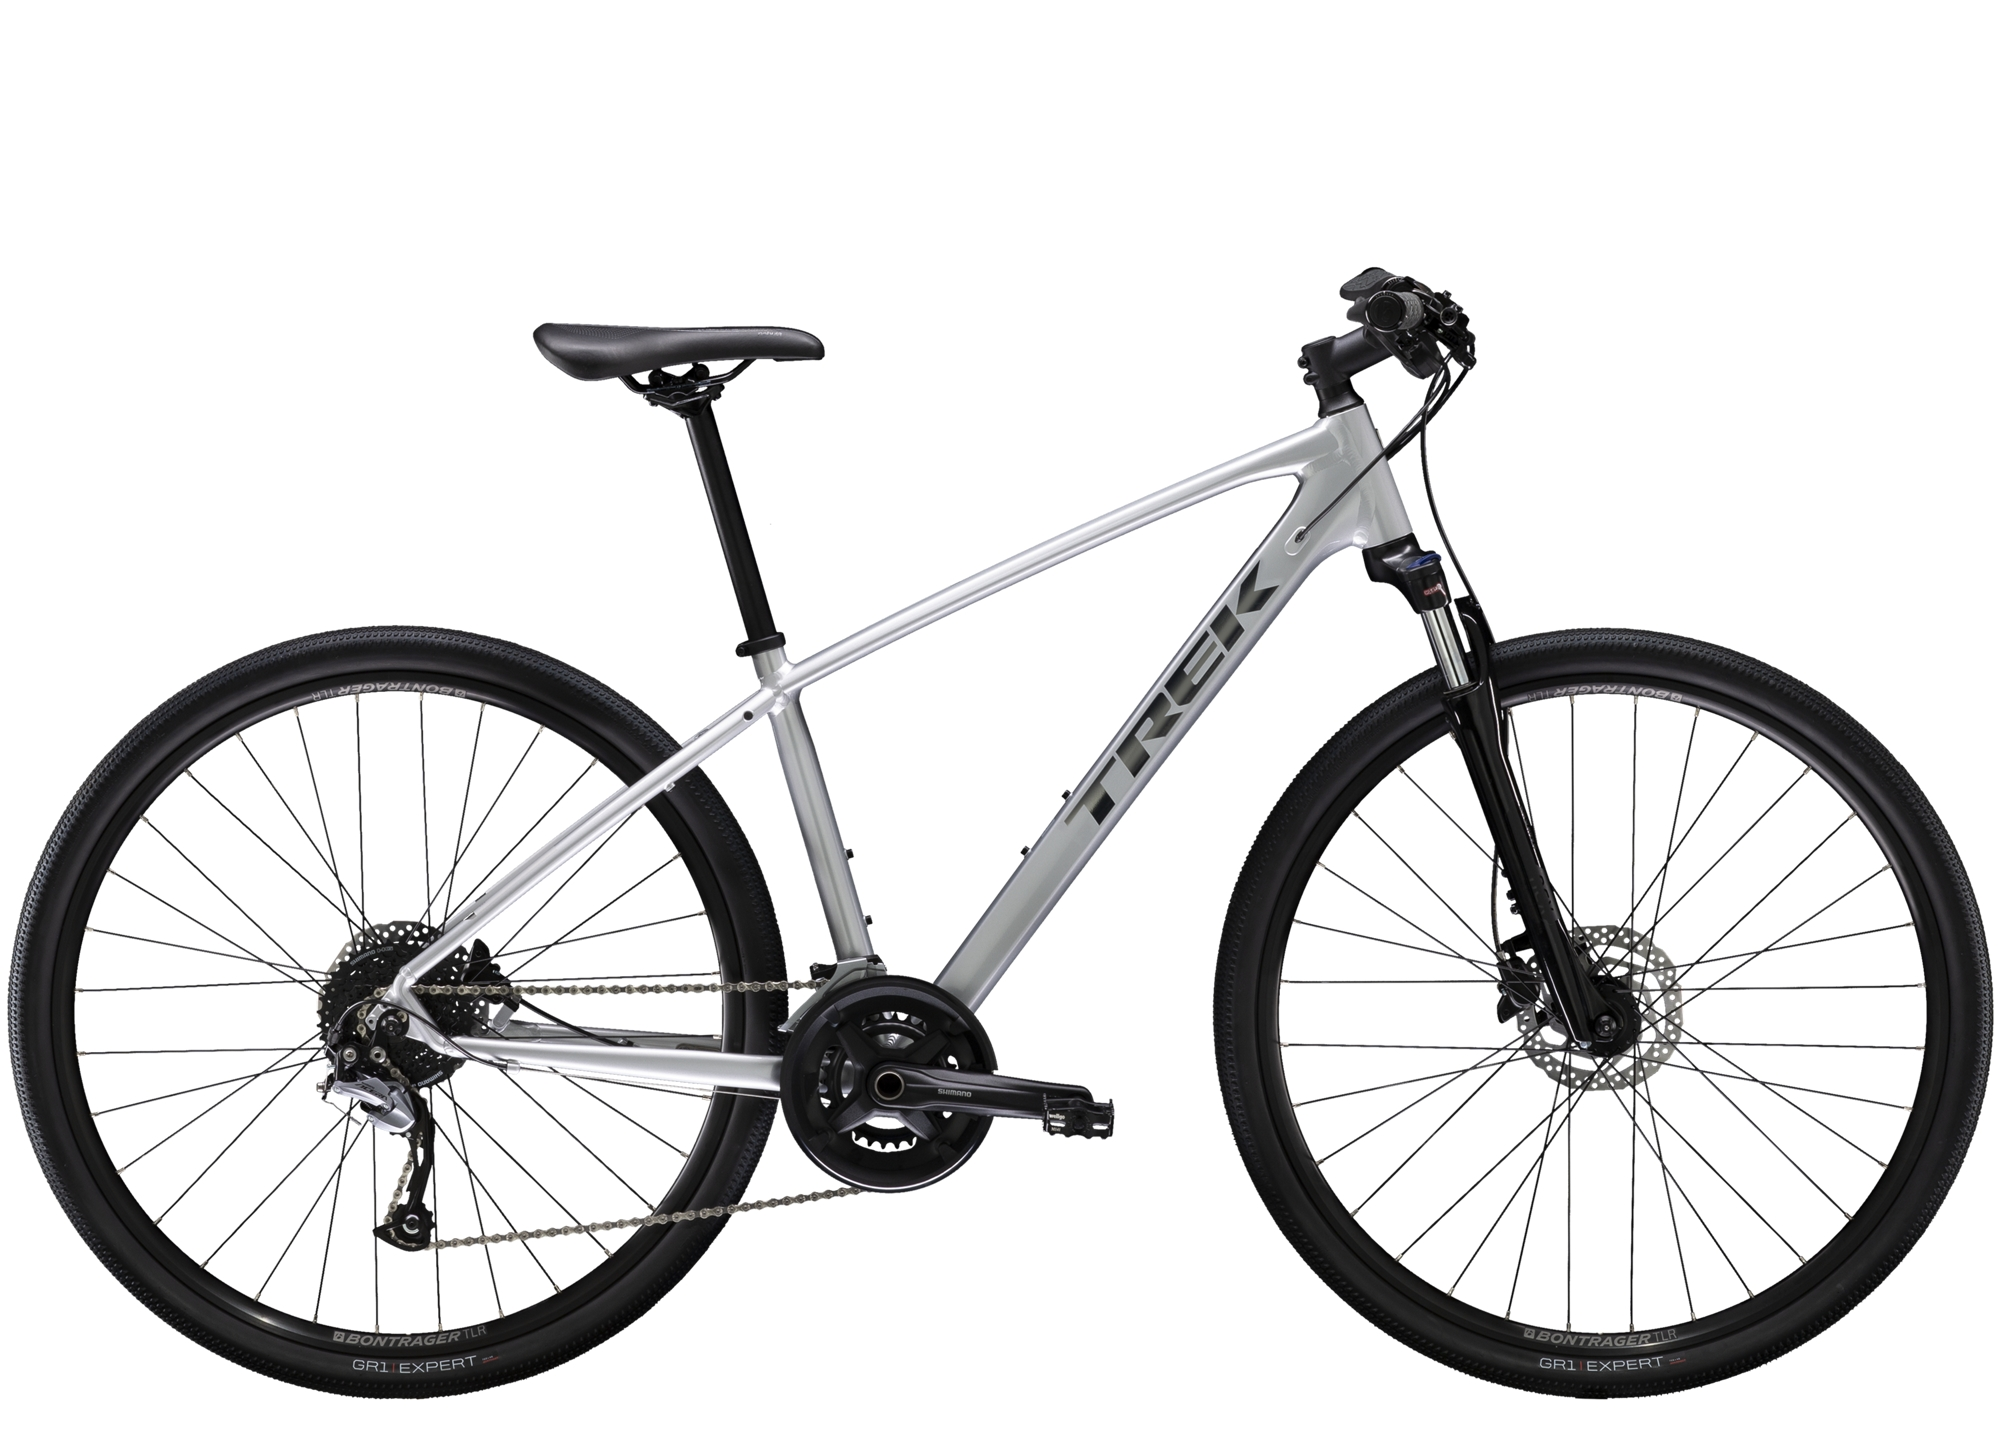 2020 Trek Dual Sport 3 Hybrid Bike in Silver